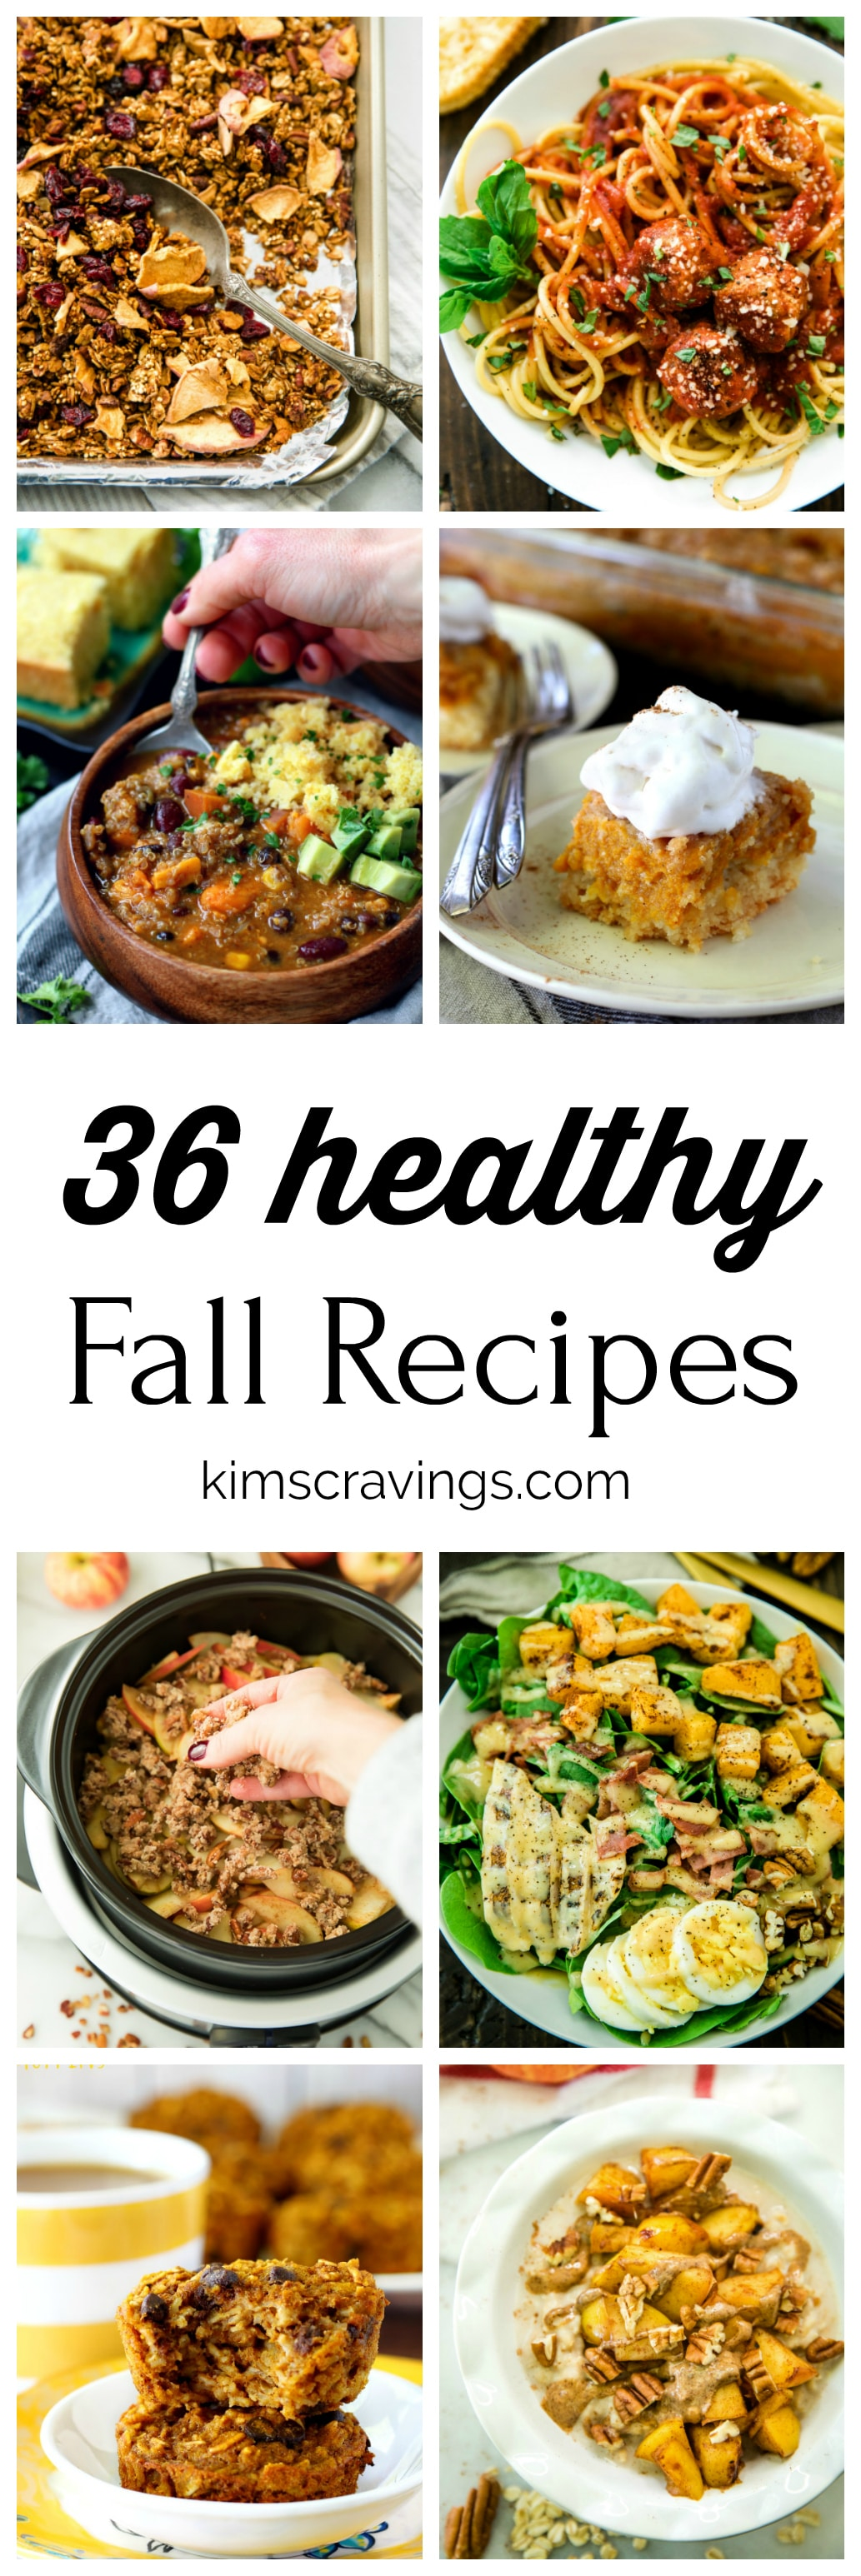 Delicious, cozy recipes to make in October and November coming your way! Stock up on extra pumpkin, winter squash, apples, brussels sprouts and more to make these healthy fall recipes.